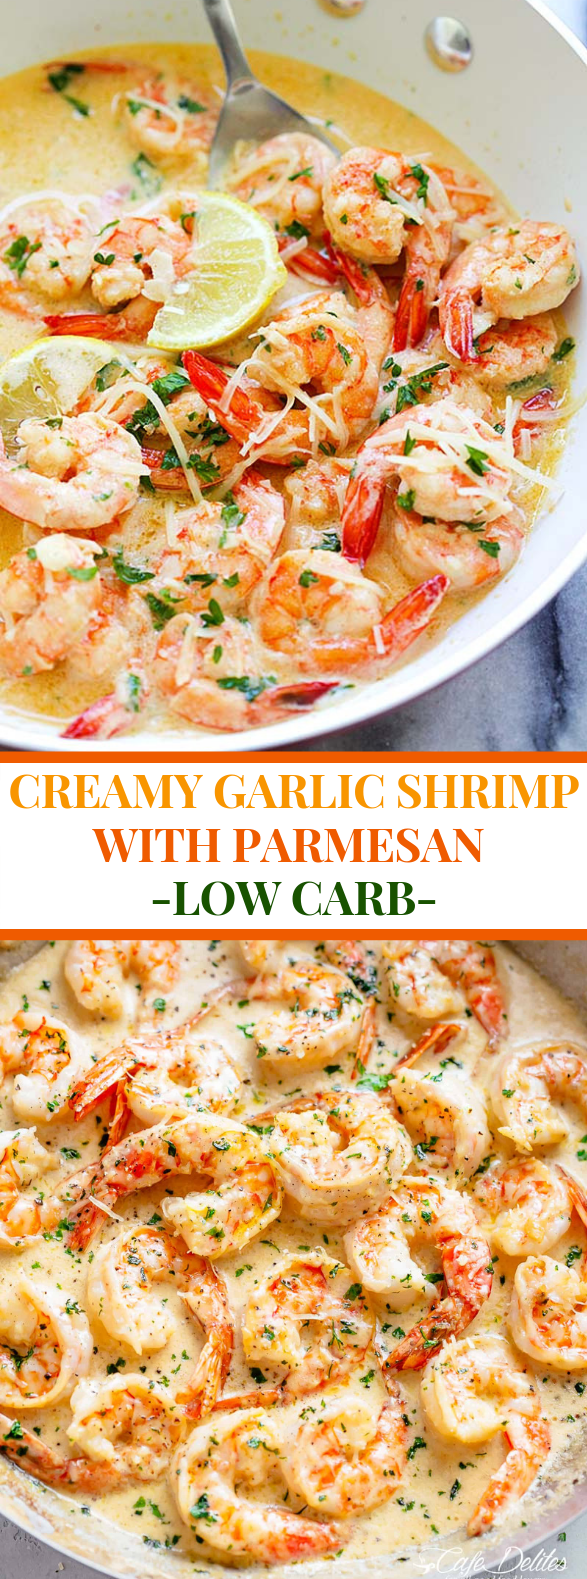 creamy garlic shrimp with parmesan (low carb) #diet #amazingmeal